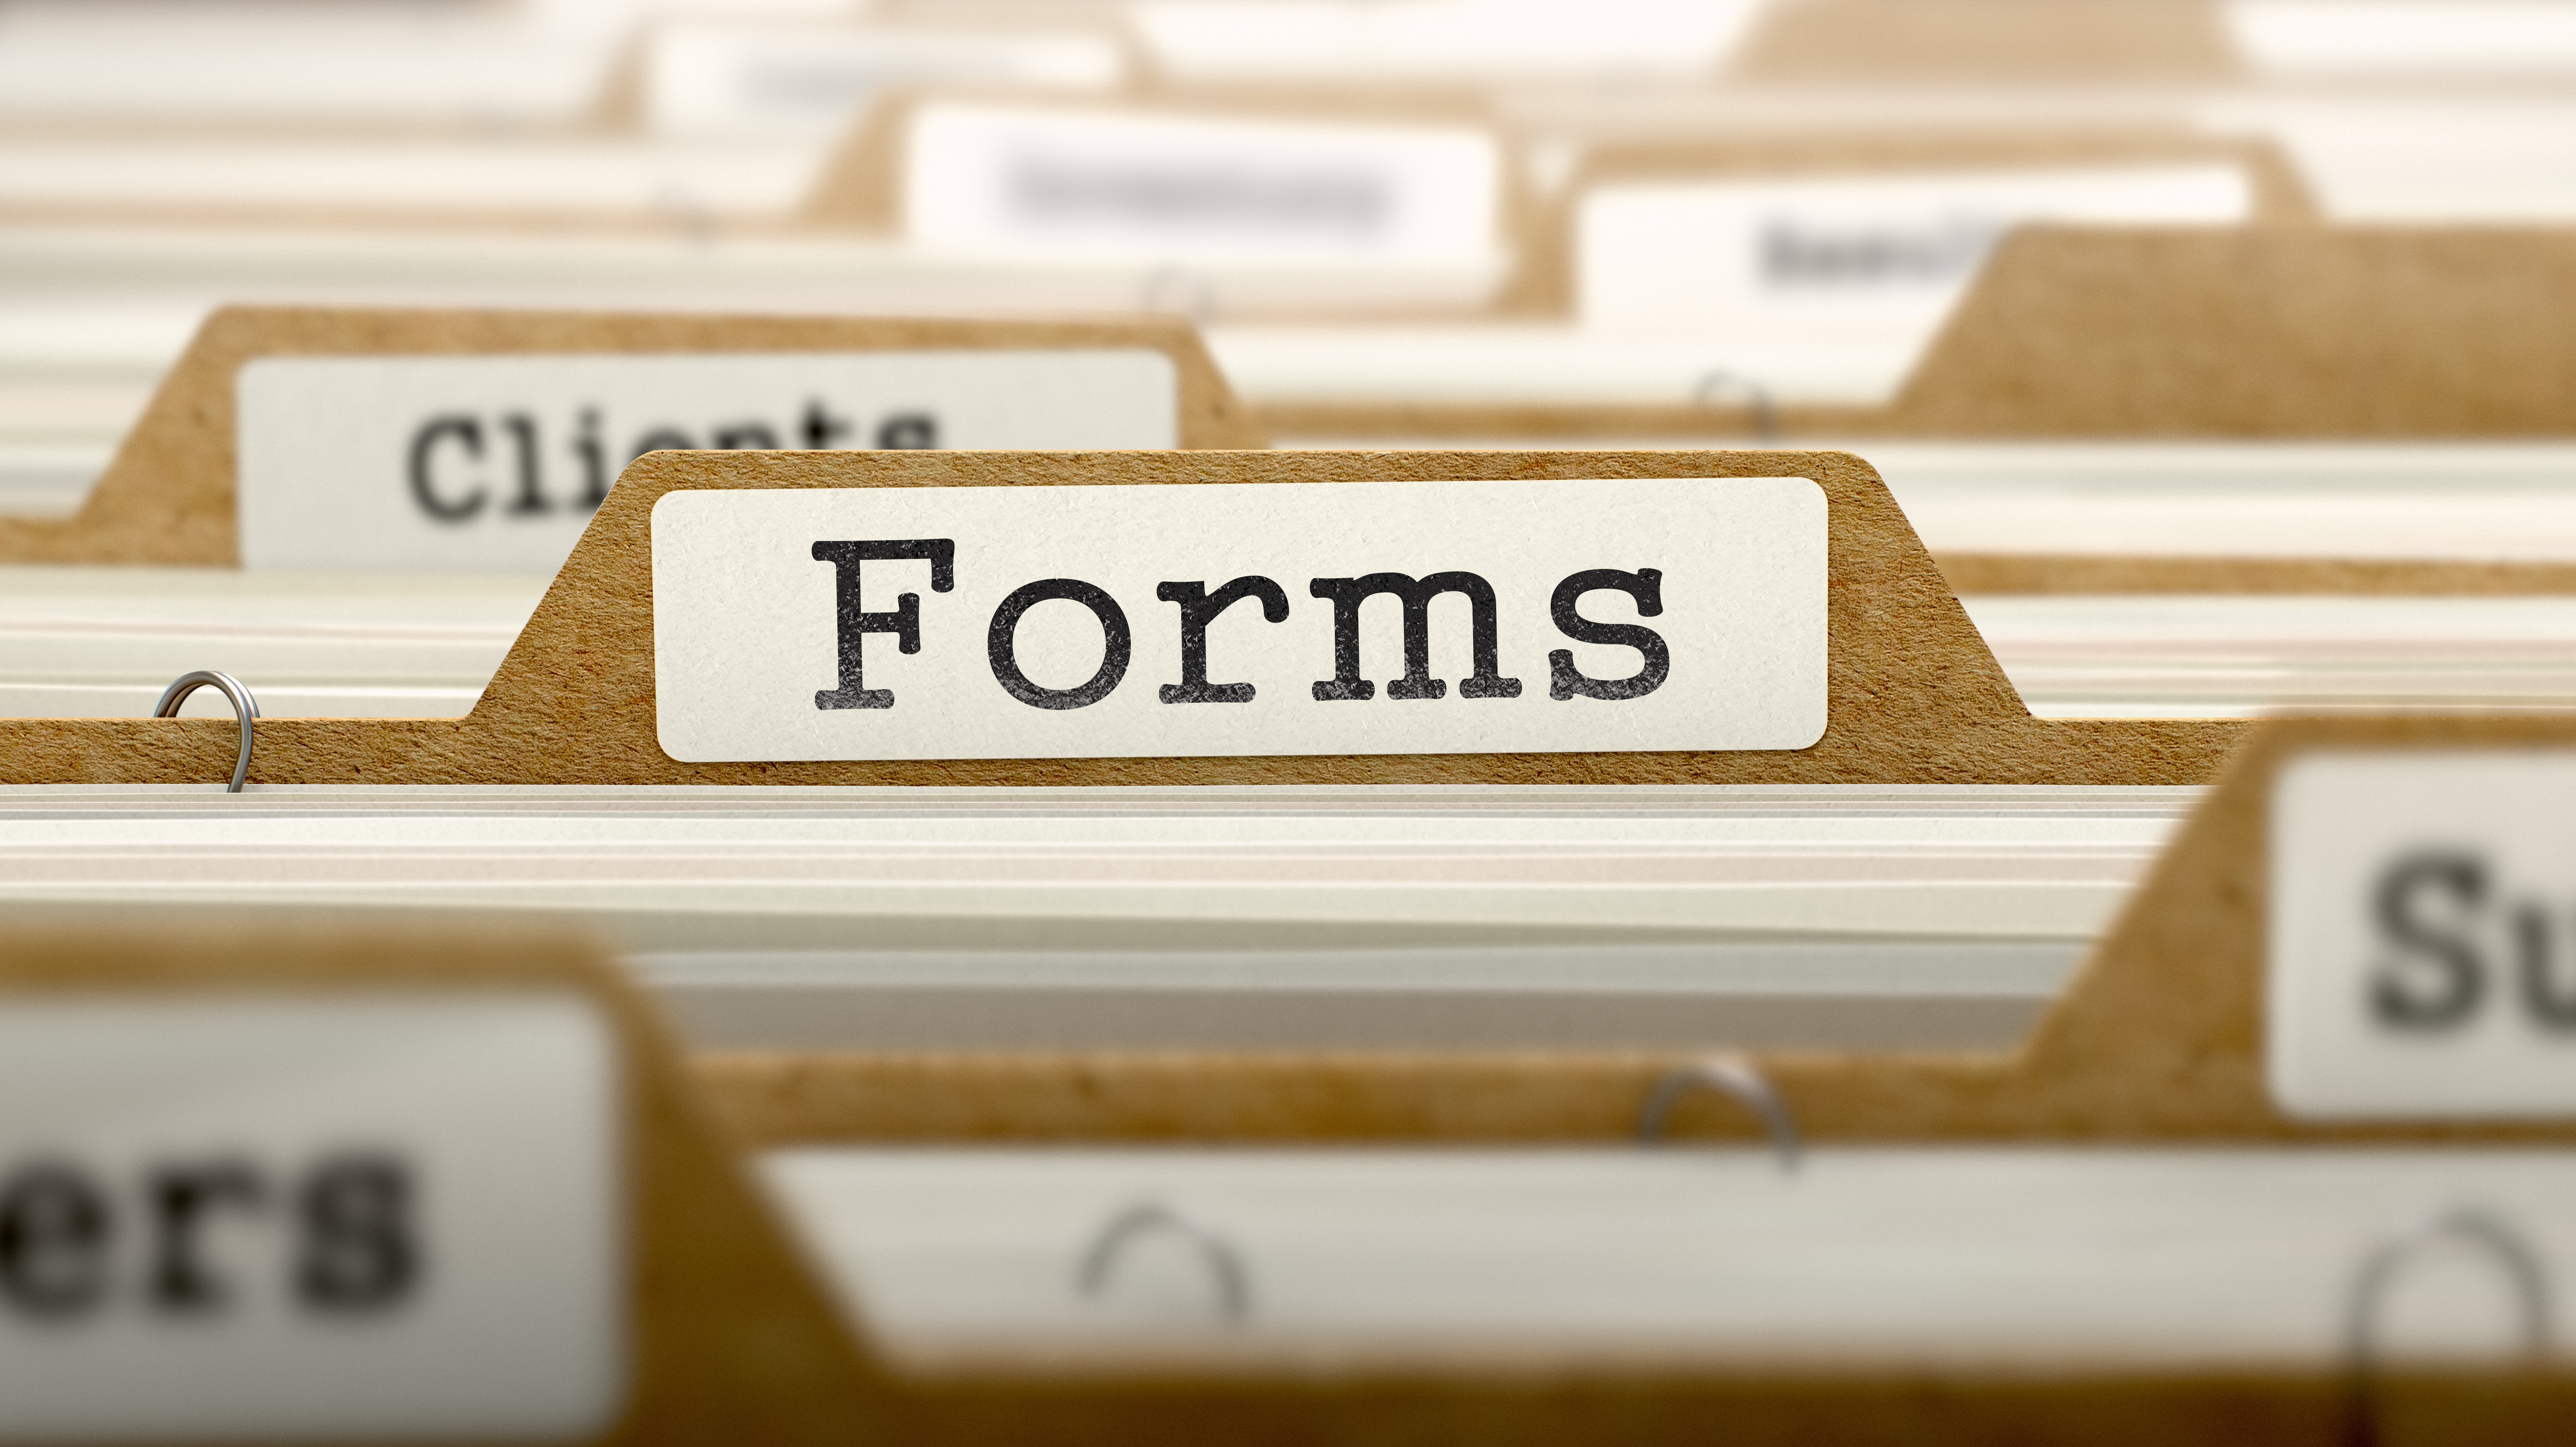 Uniform Commercial Code (UCC) Article 9 Filing Forms